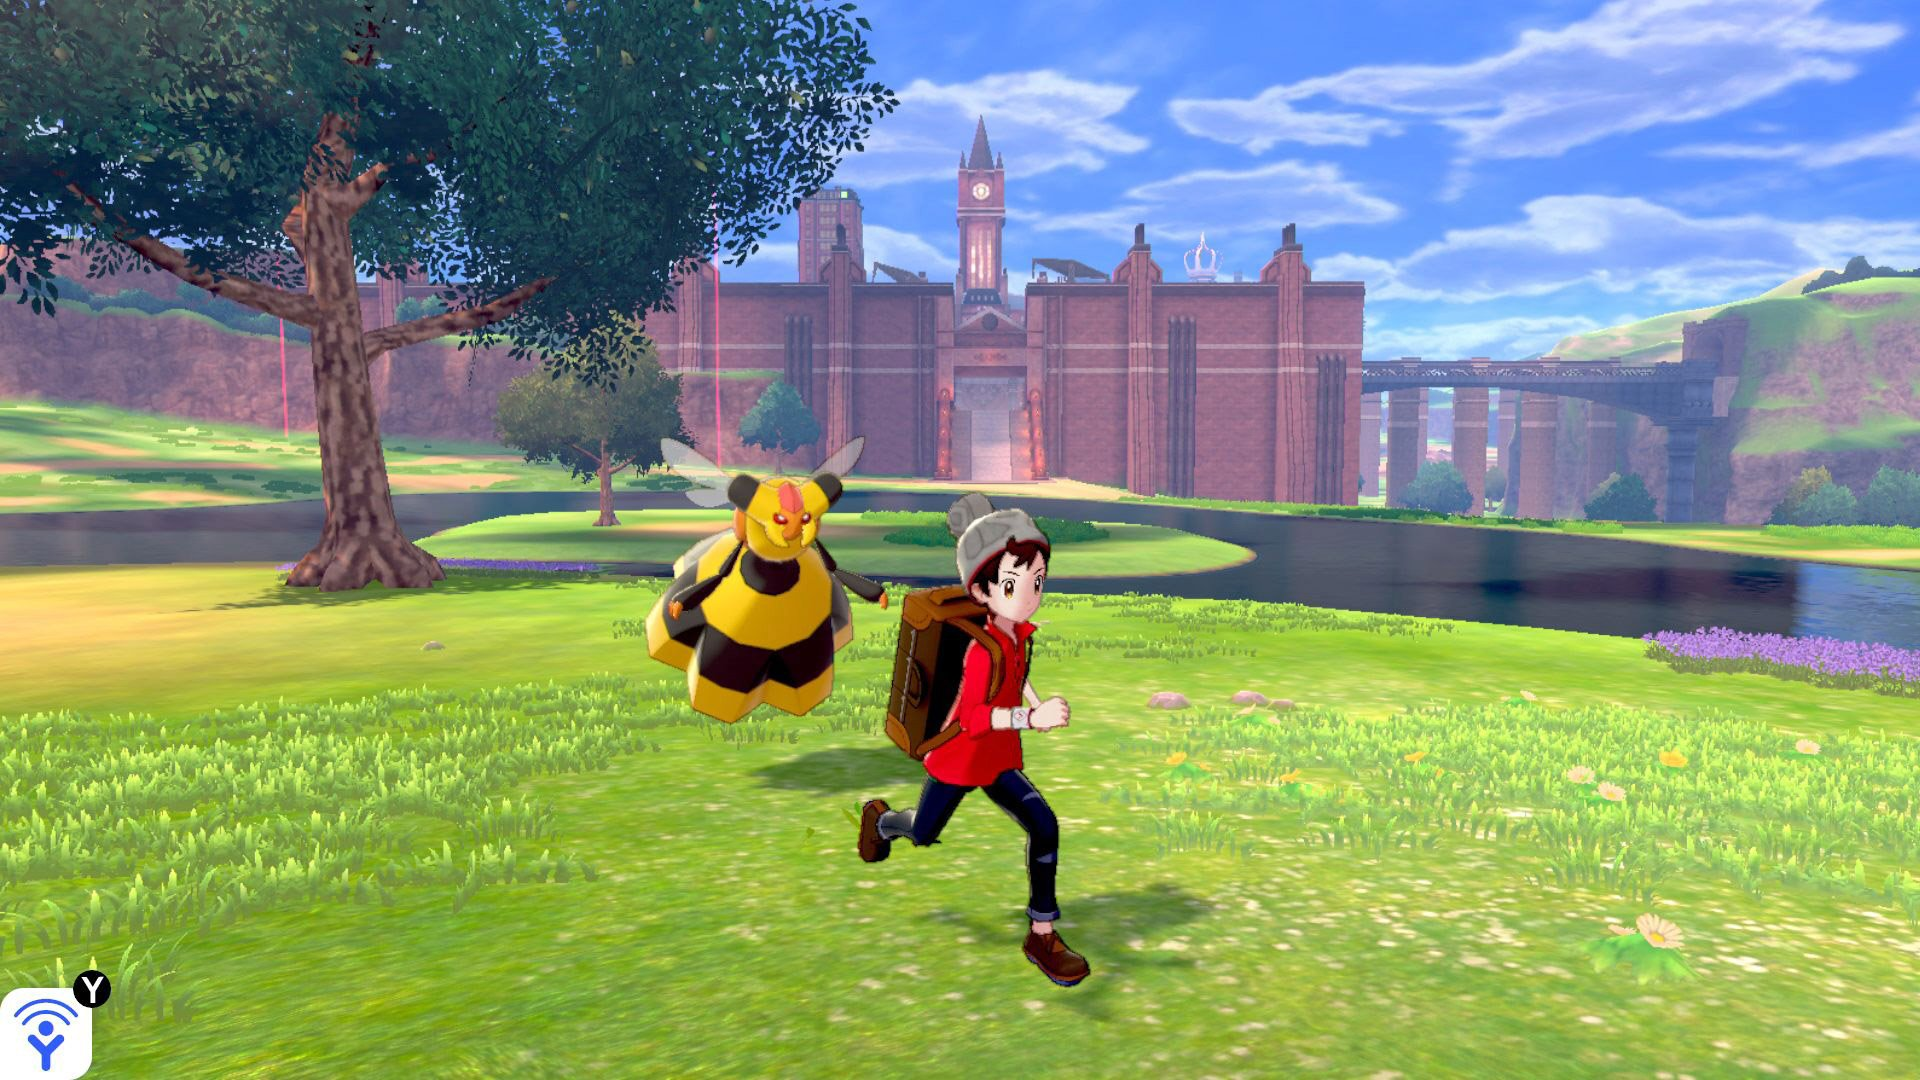 I'm stoked for Pokemon Sword and Shield, but the E3 showing was a letdown screenshot